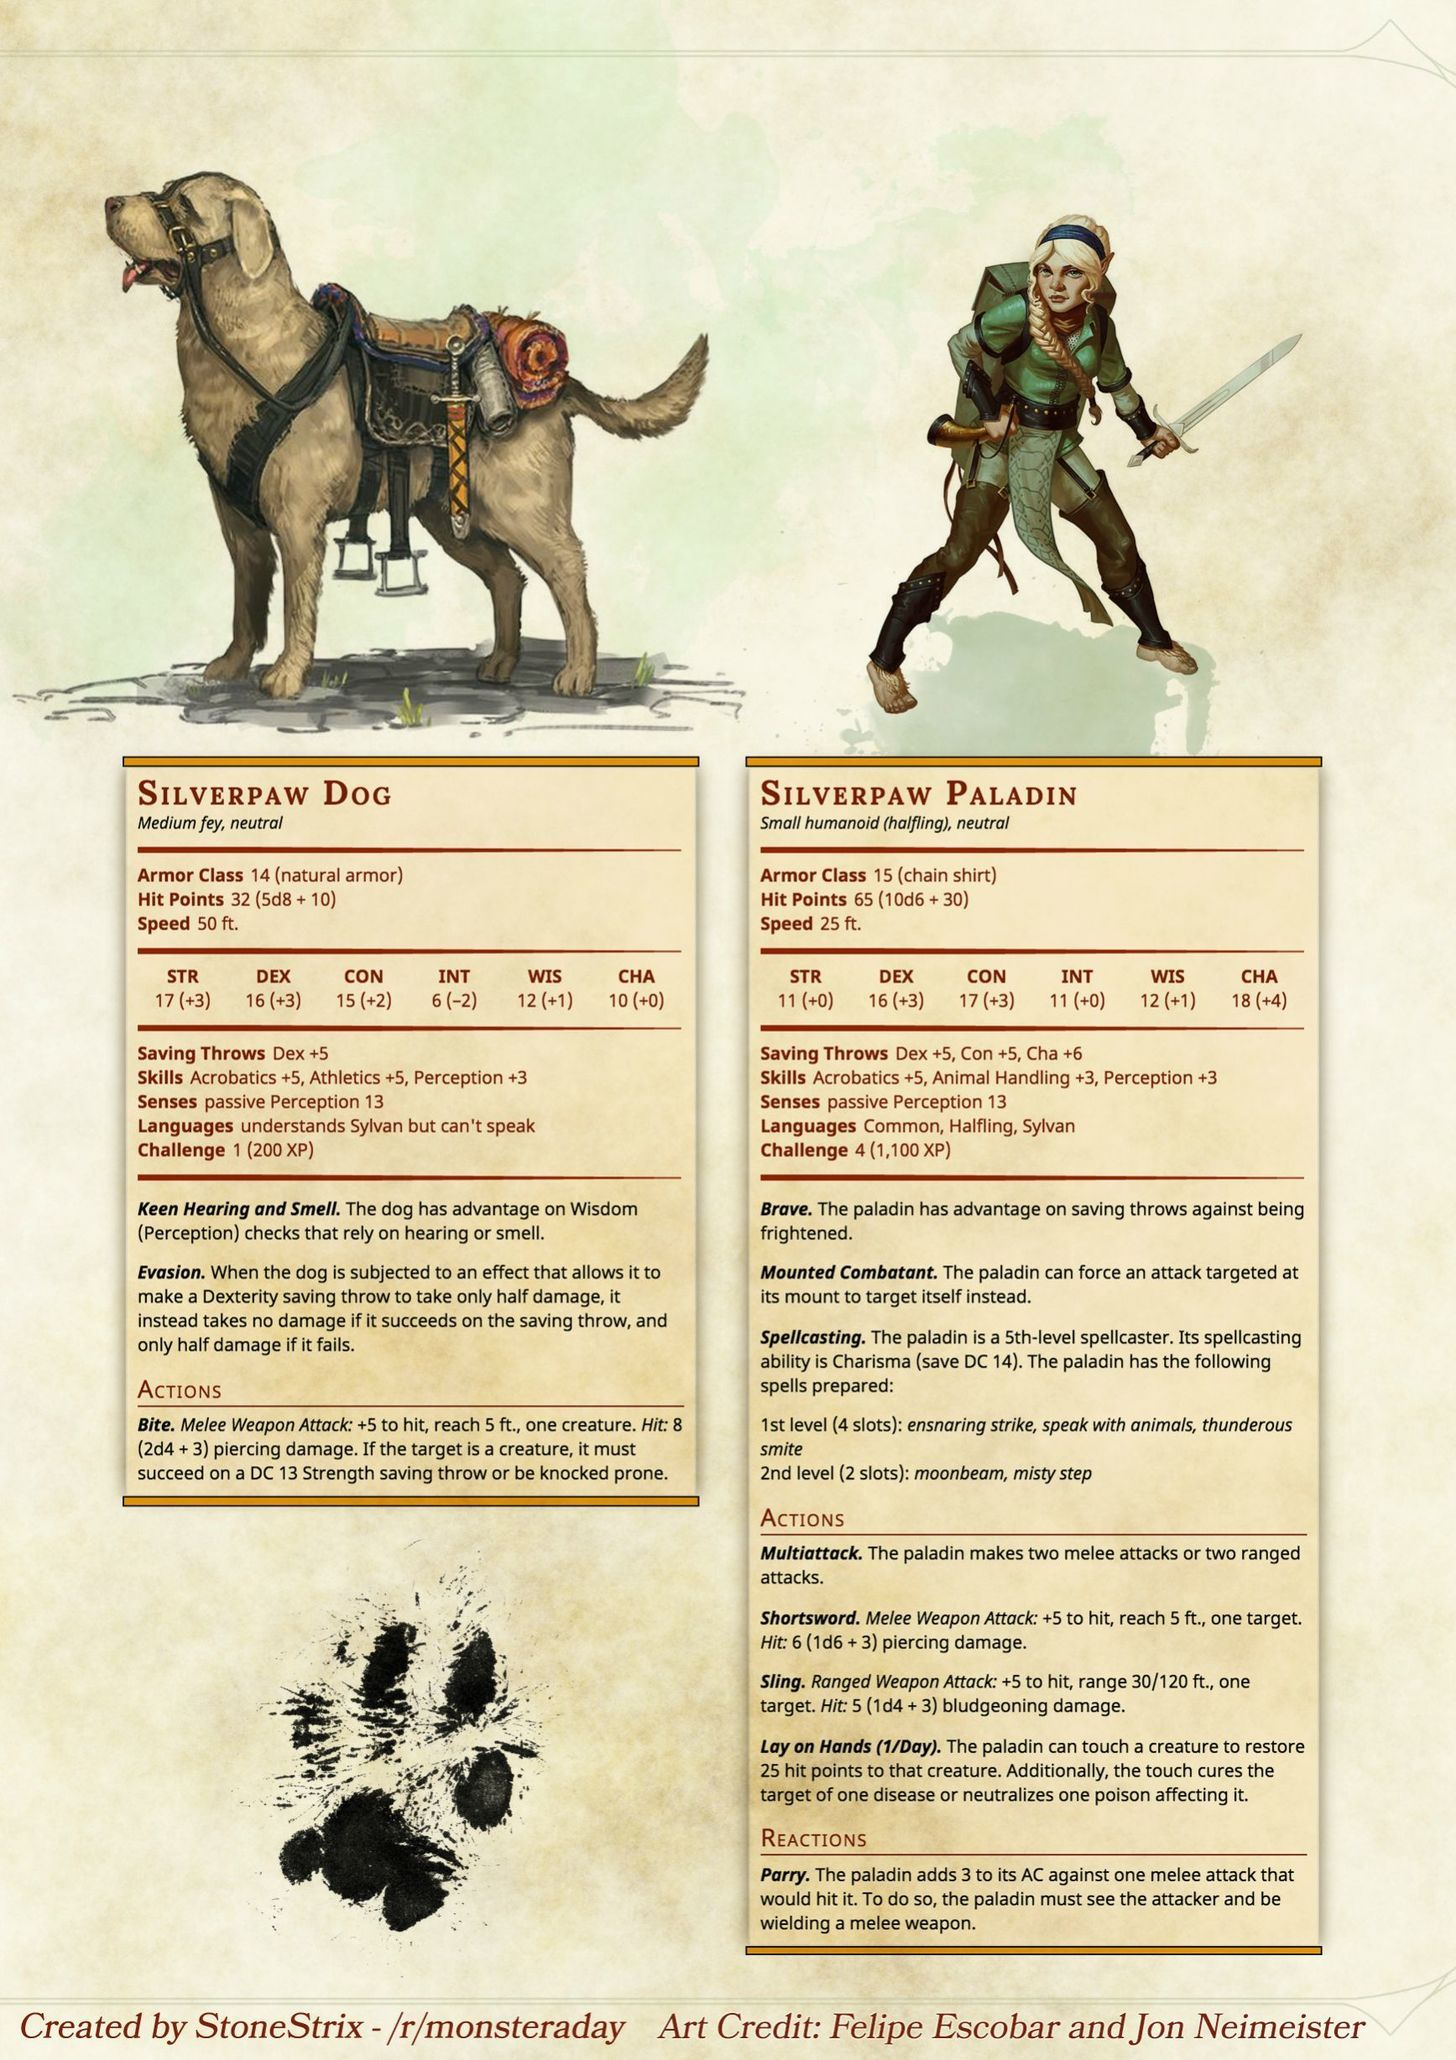 Silverpaw Paladin And Dog Dungeons And Dragons Characters D D Dungeons And Dragons Dungeons And Dragons Homebrew September 14, 2019 by admin leave a comment. pinterest